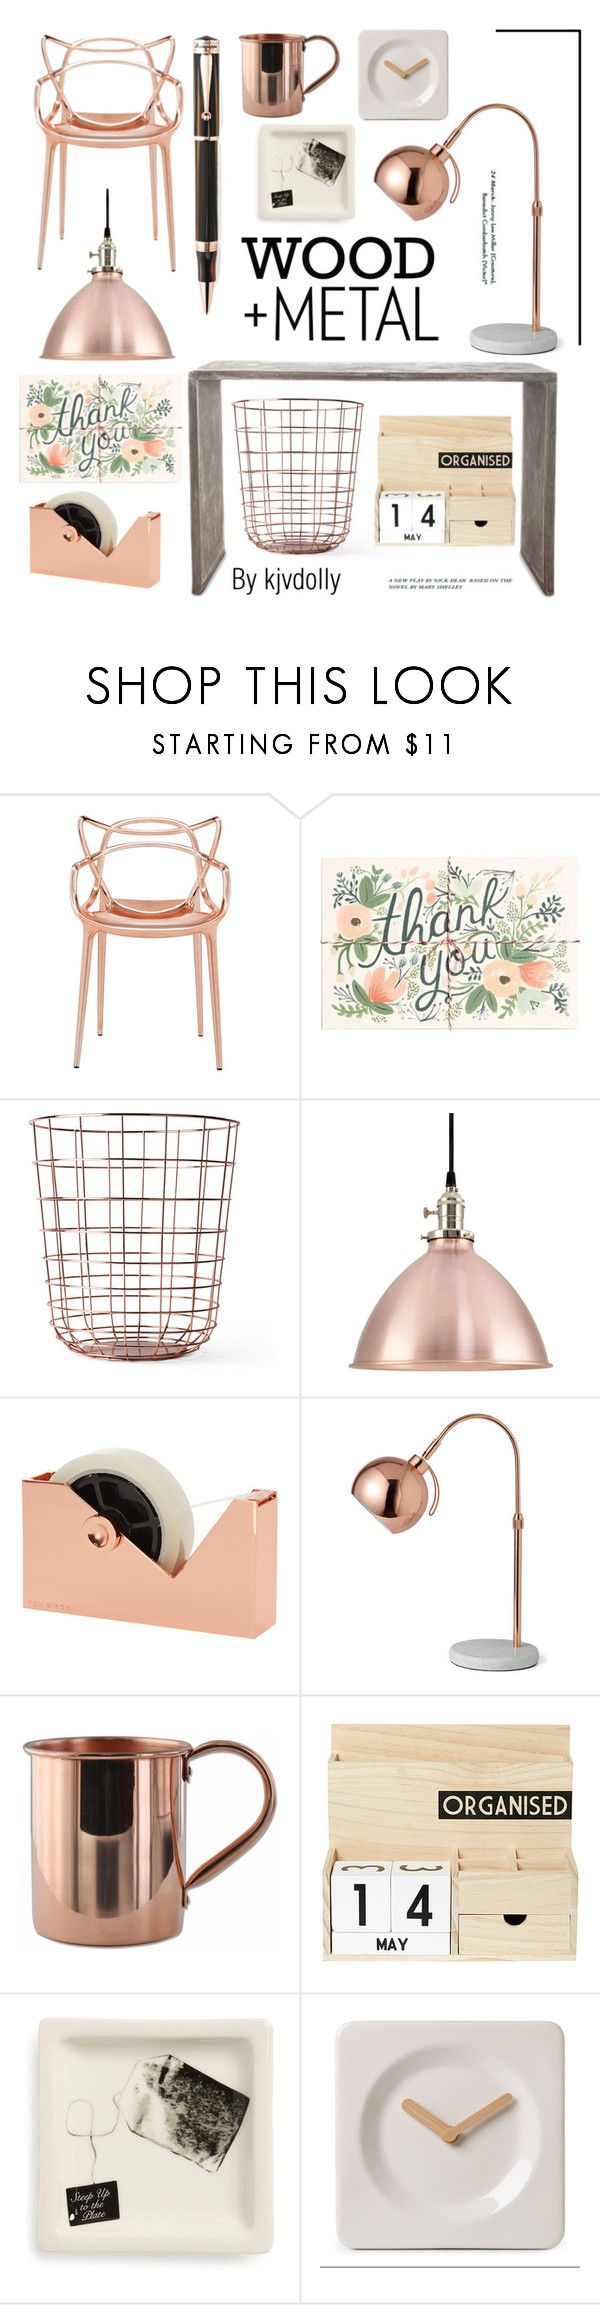 """""""Copper and Wood office"""" by kjvdolly ❤ liked on Polyvore featuring interior, interiors, interior design, home, home decor, interior decorating, Kartell, Rifle Paper Co, Menu and Tom Dixon"""